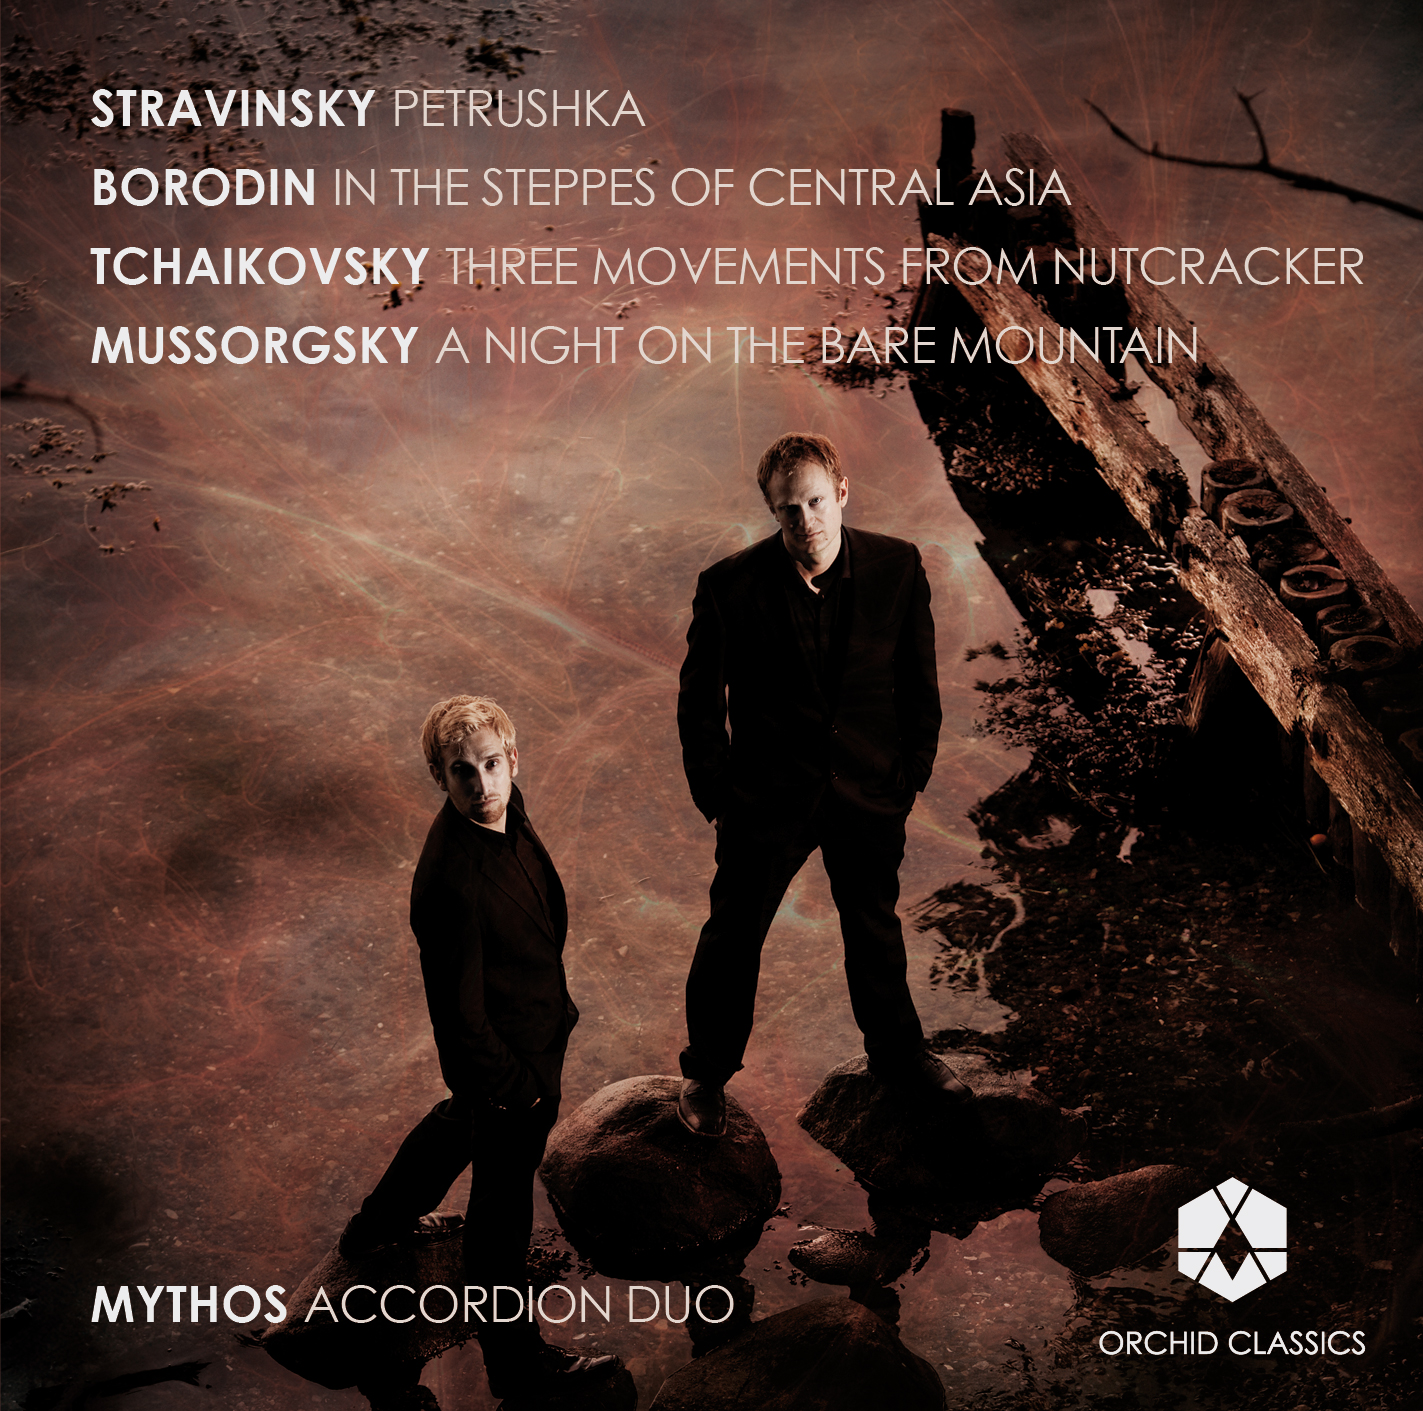 http://www.amazon.co.uk/Mythos-Russian-Masterworks-Orchid-Classics/dp/B00BK6HRWW